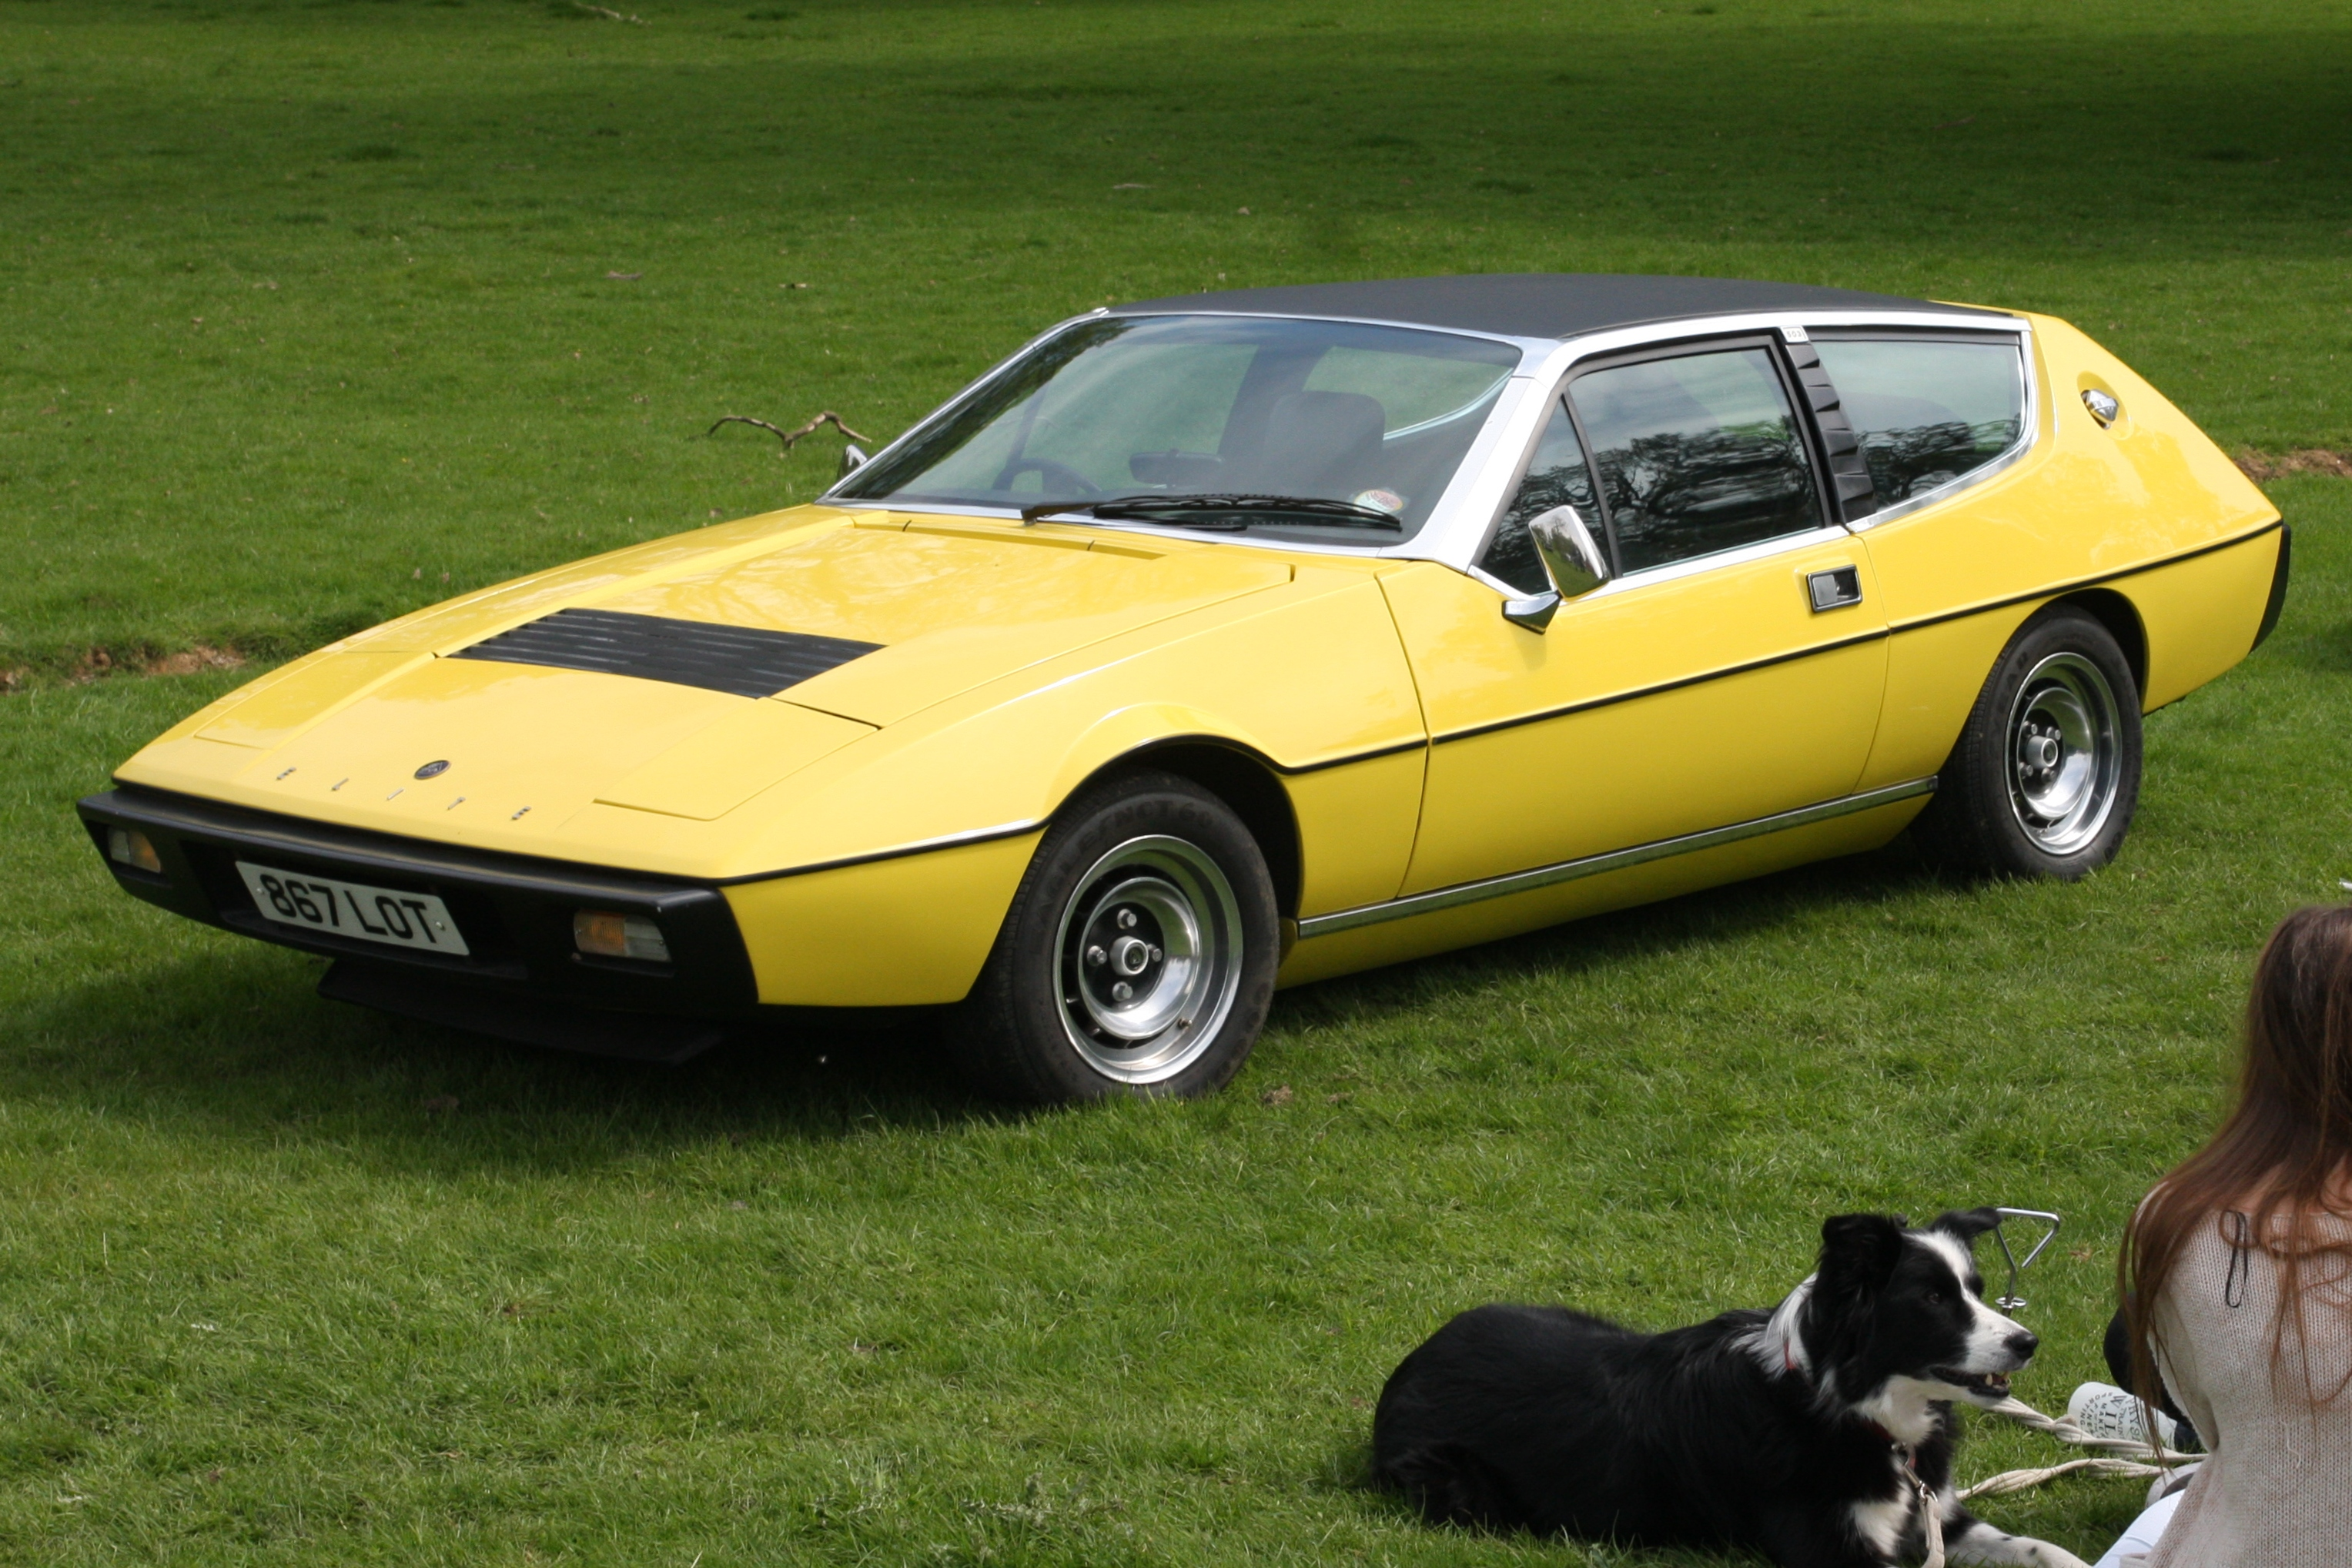 https://upload.wikimedia.org/wikipedia/commons/e/e4/Lotus_Elite_registered_February_1975_1973cc.JPG